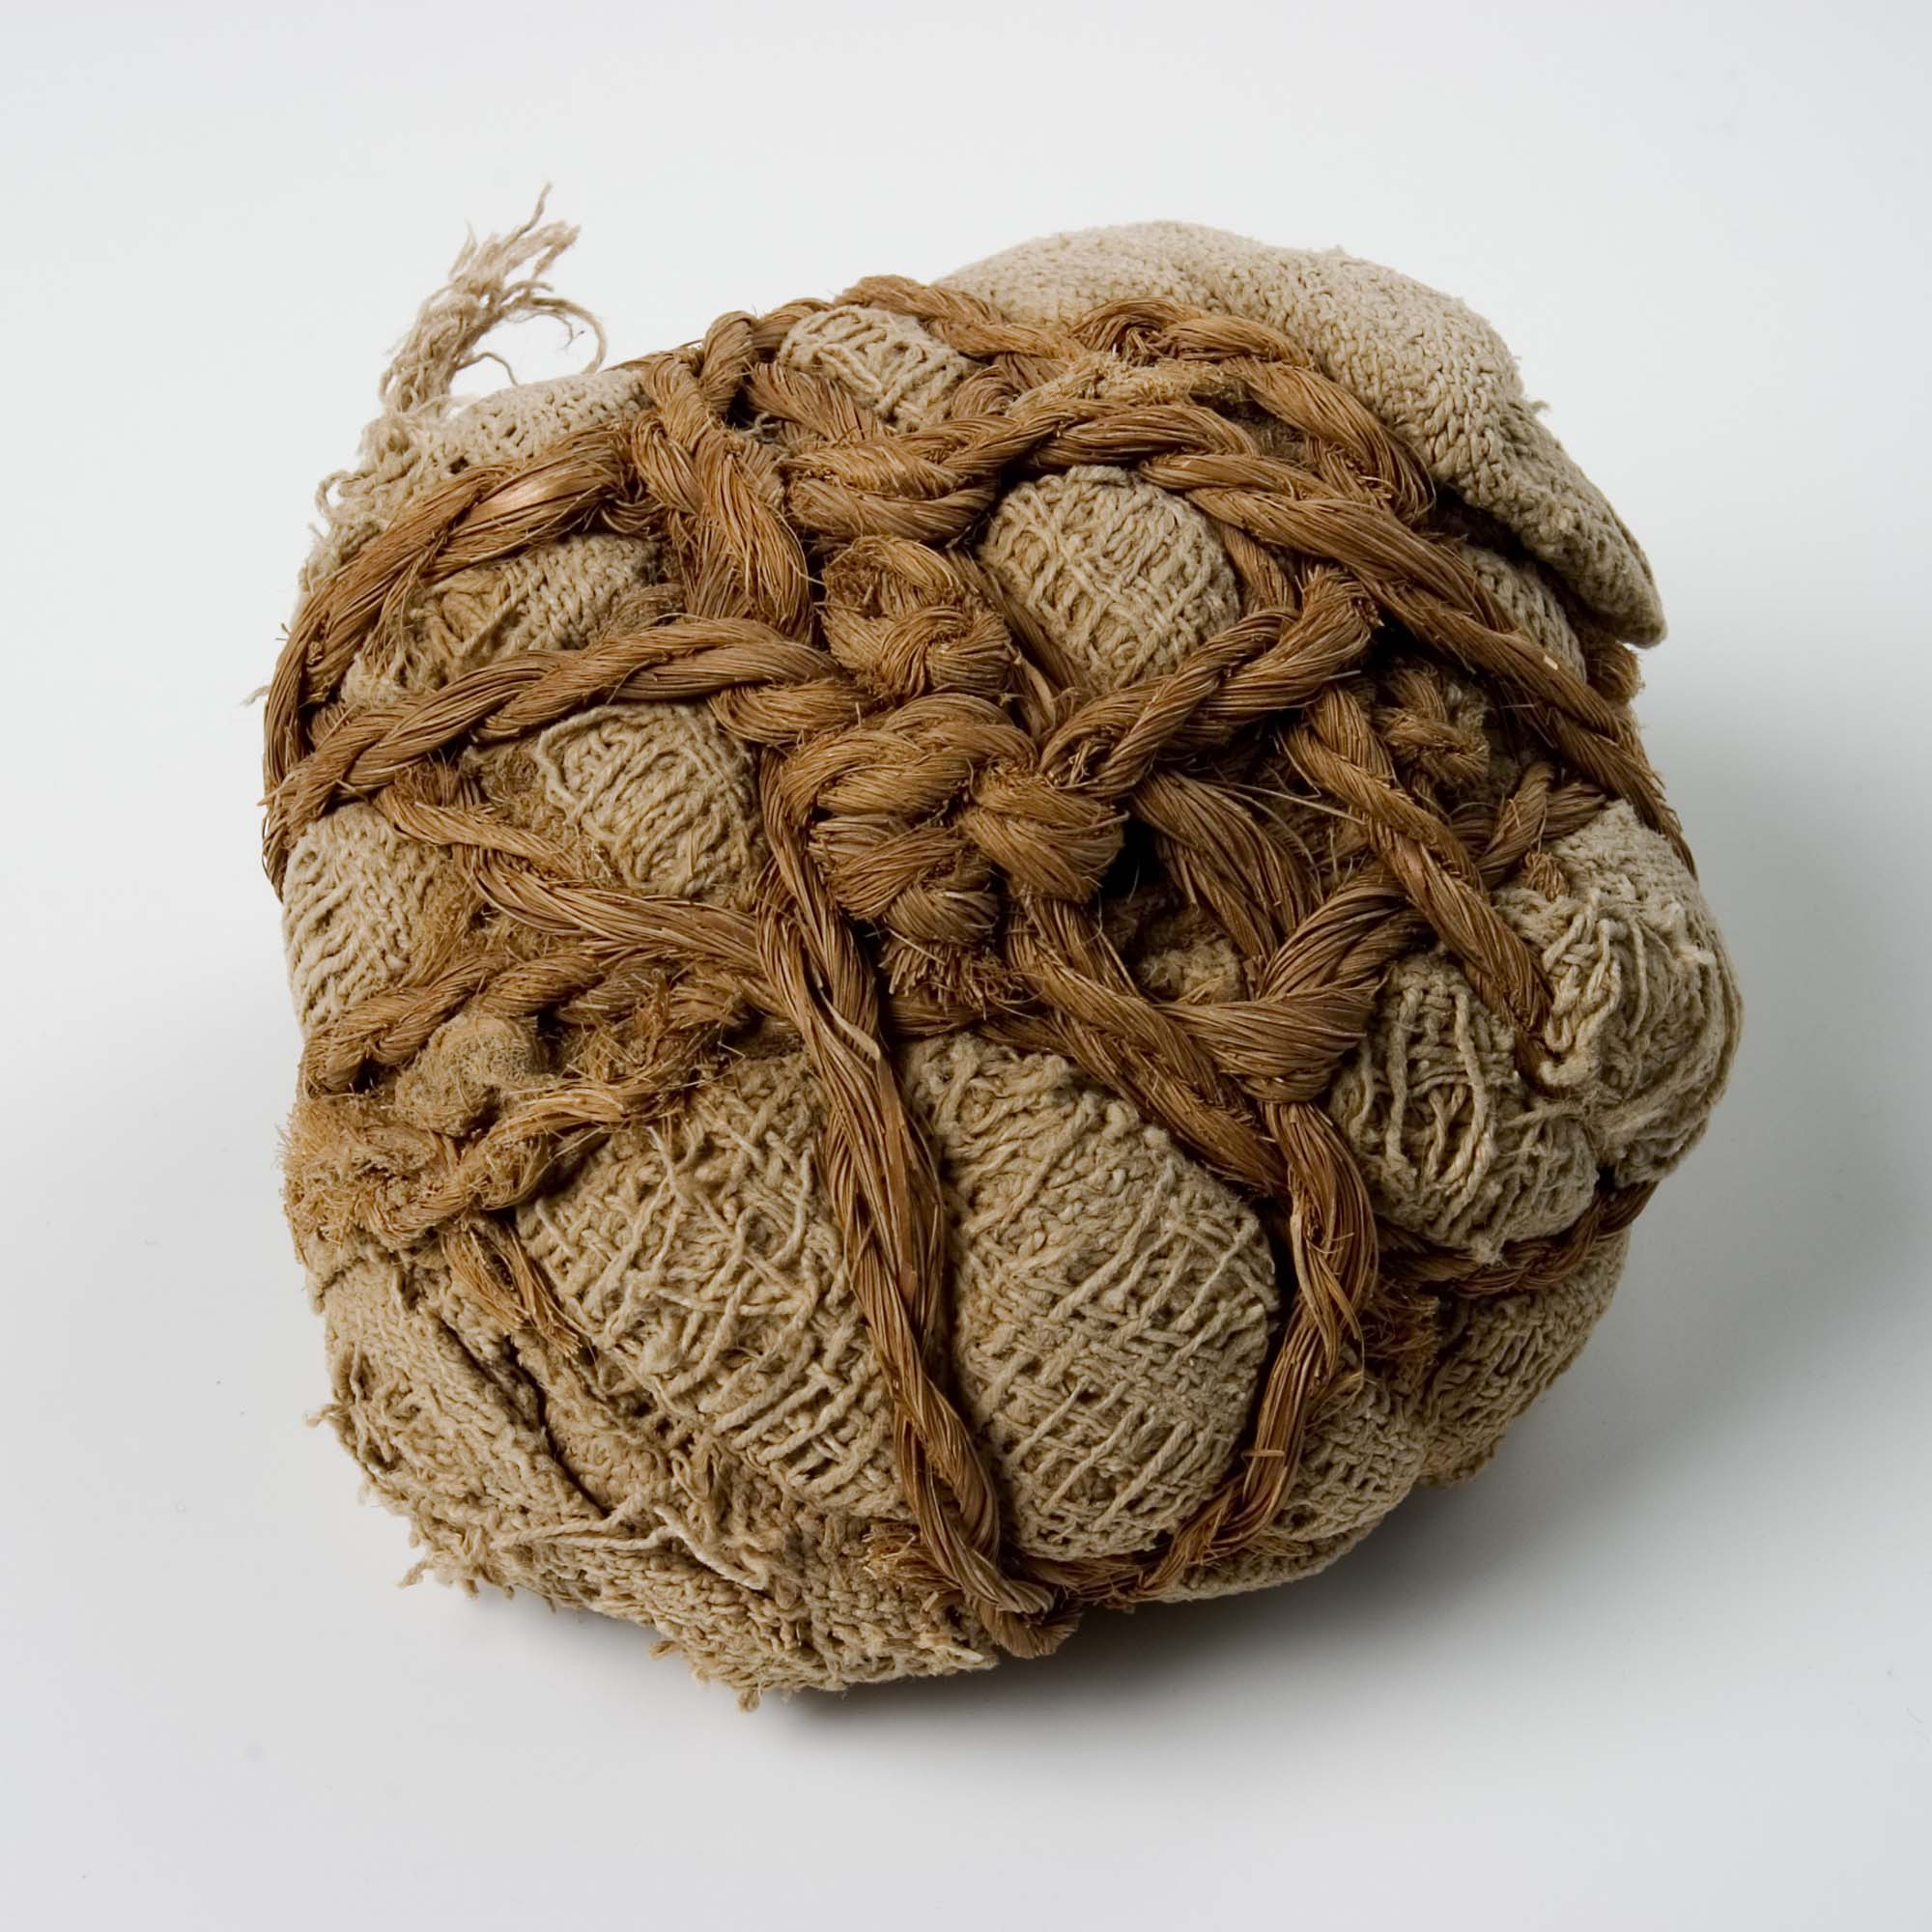 a photo of a hessian and string ball